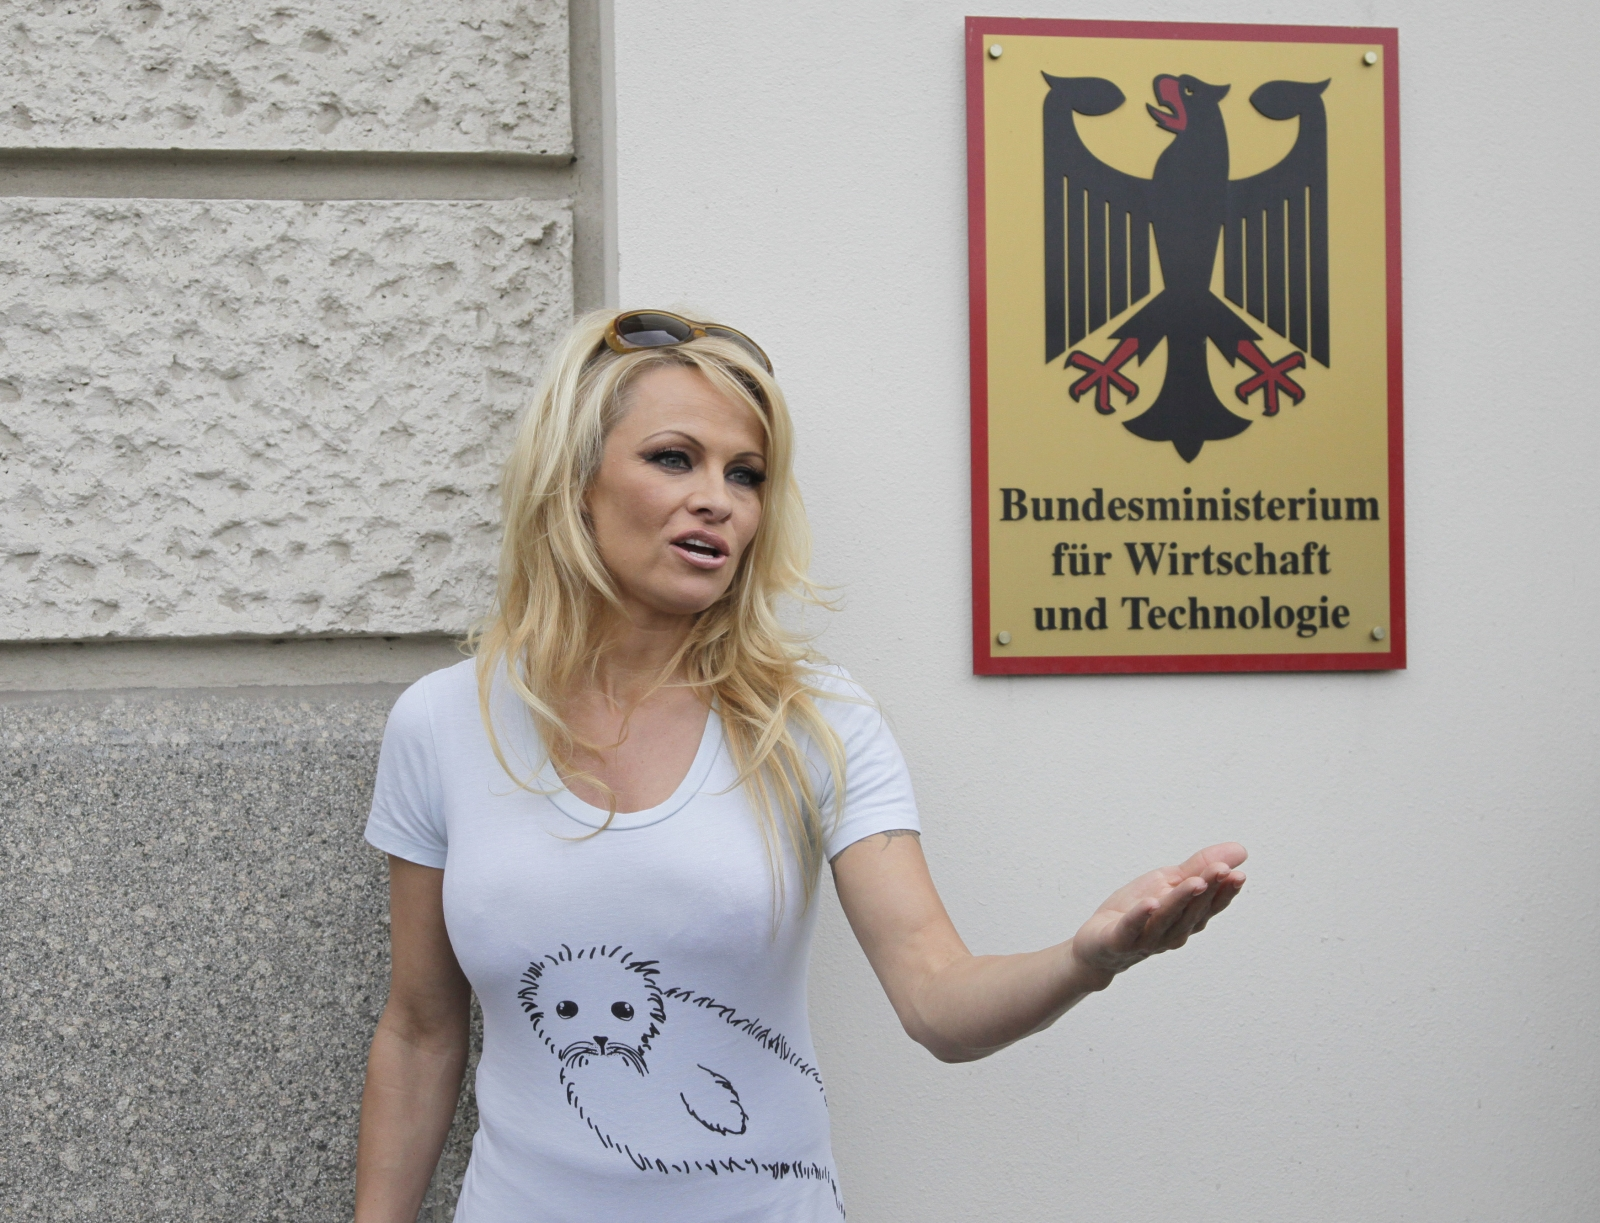 Pamela Anderson refused the ALS ice bucket challenge